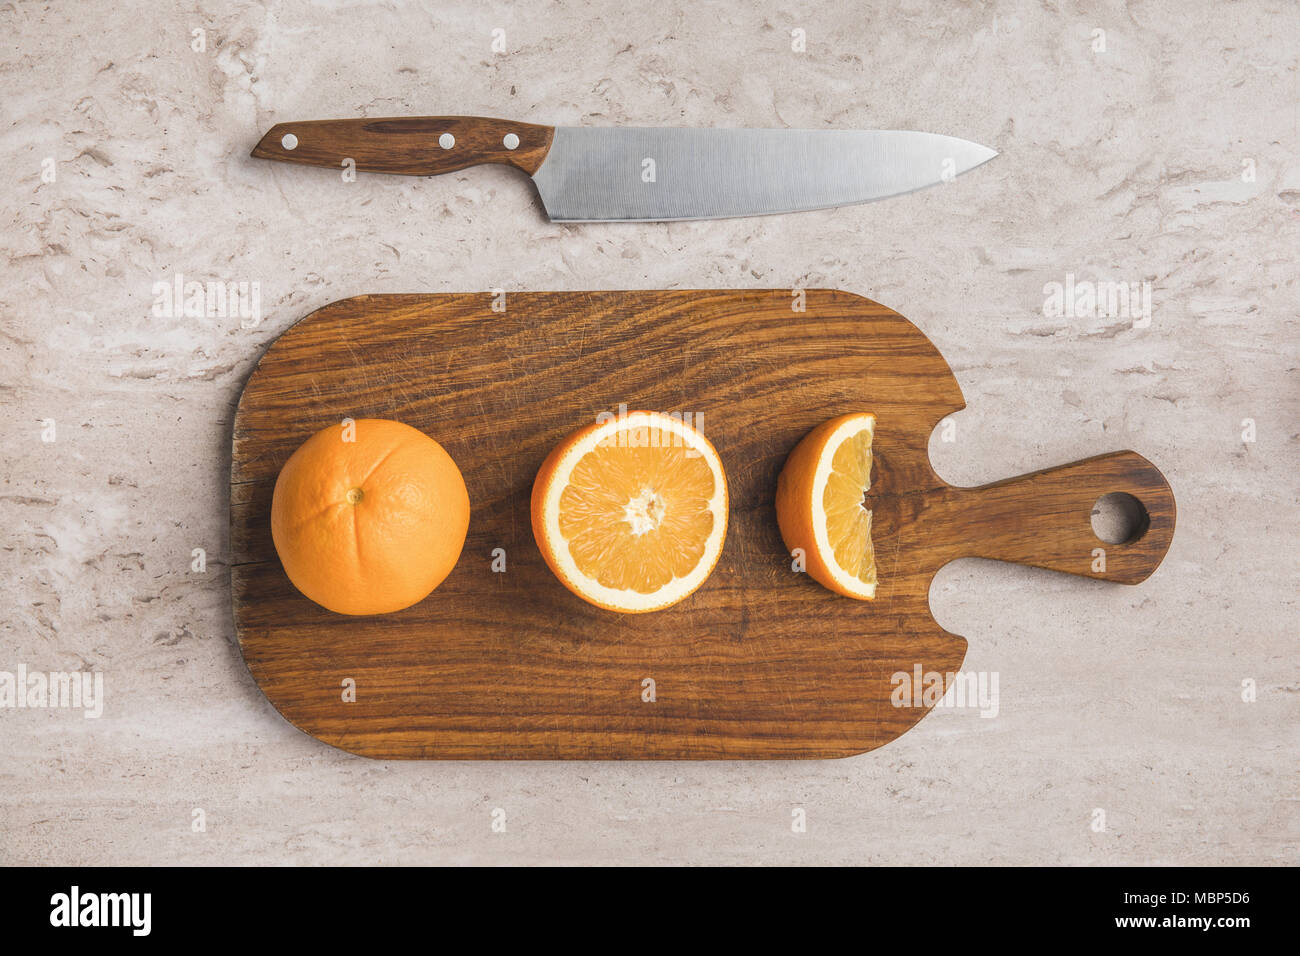 top view of ripe oranges on cutting board  - Stock Image